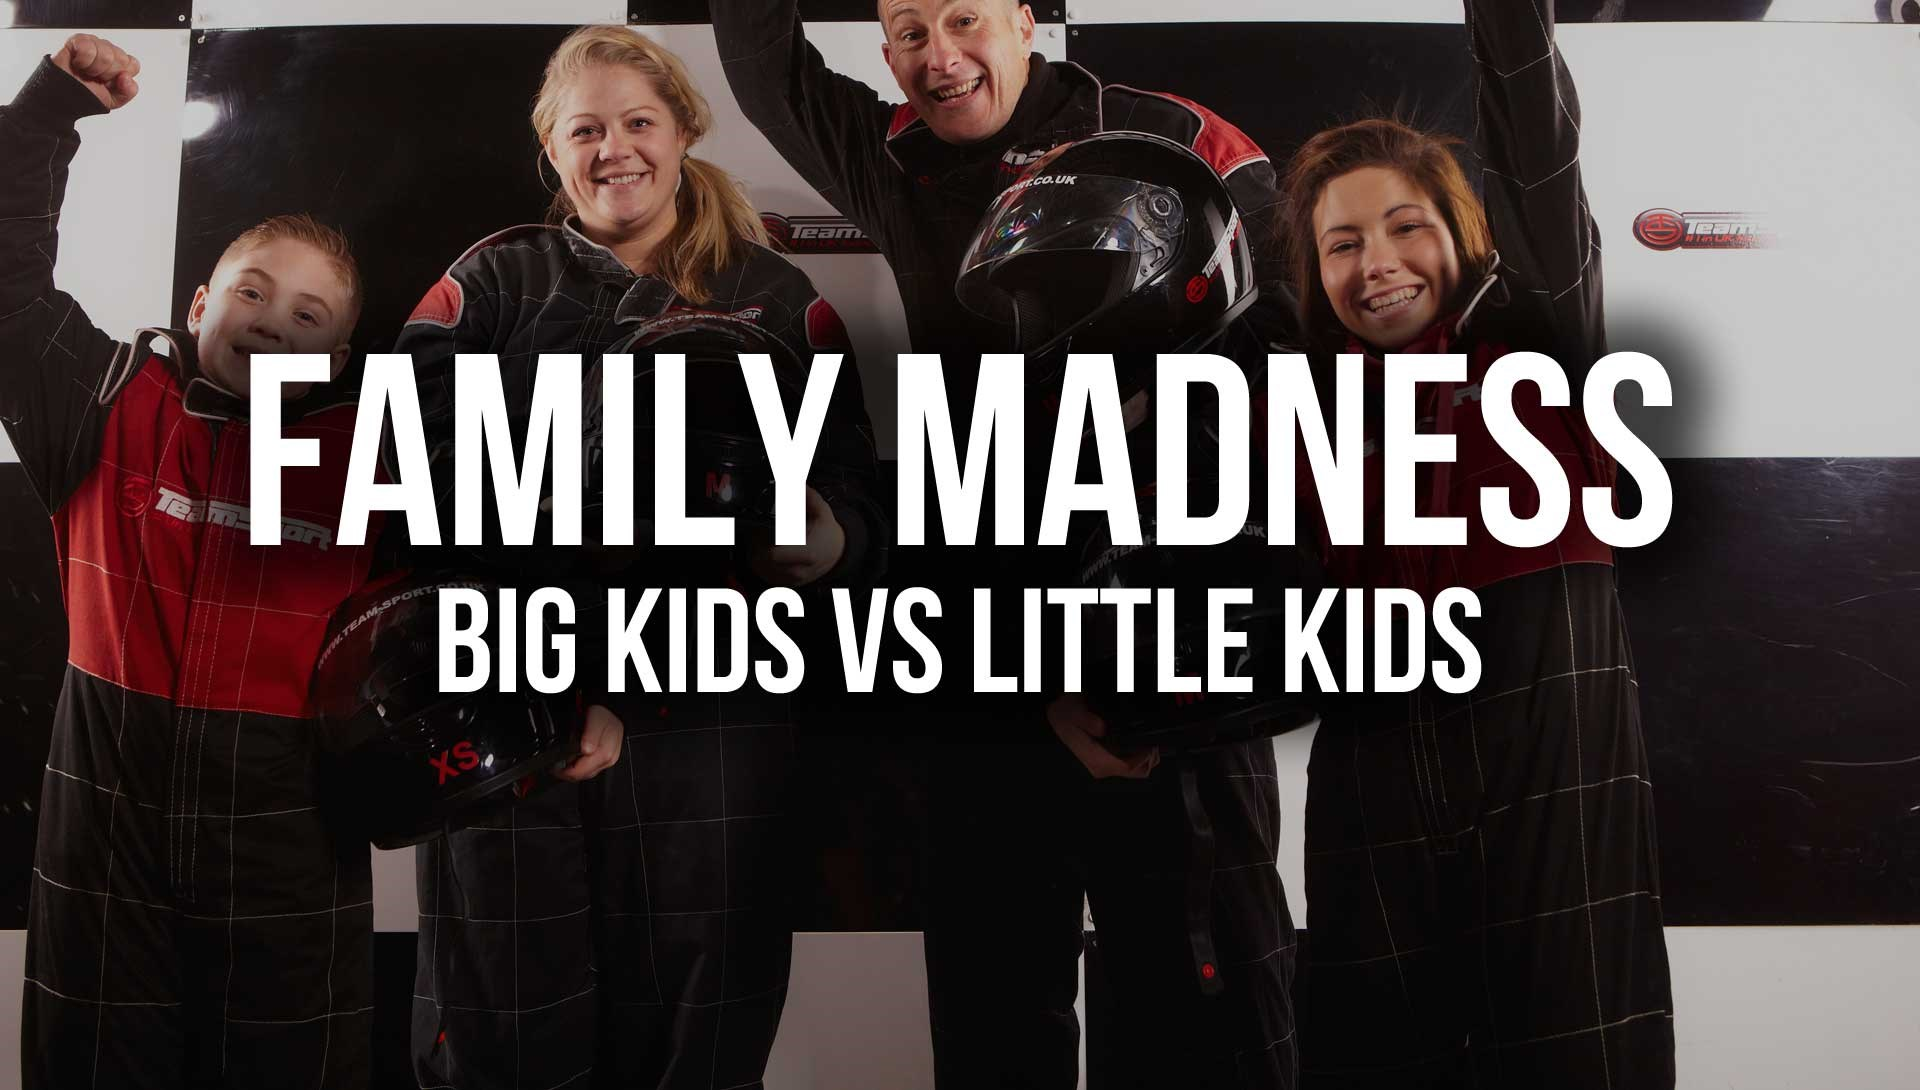 Kids Go Karting Liverpool - Family Madness